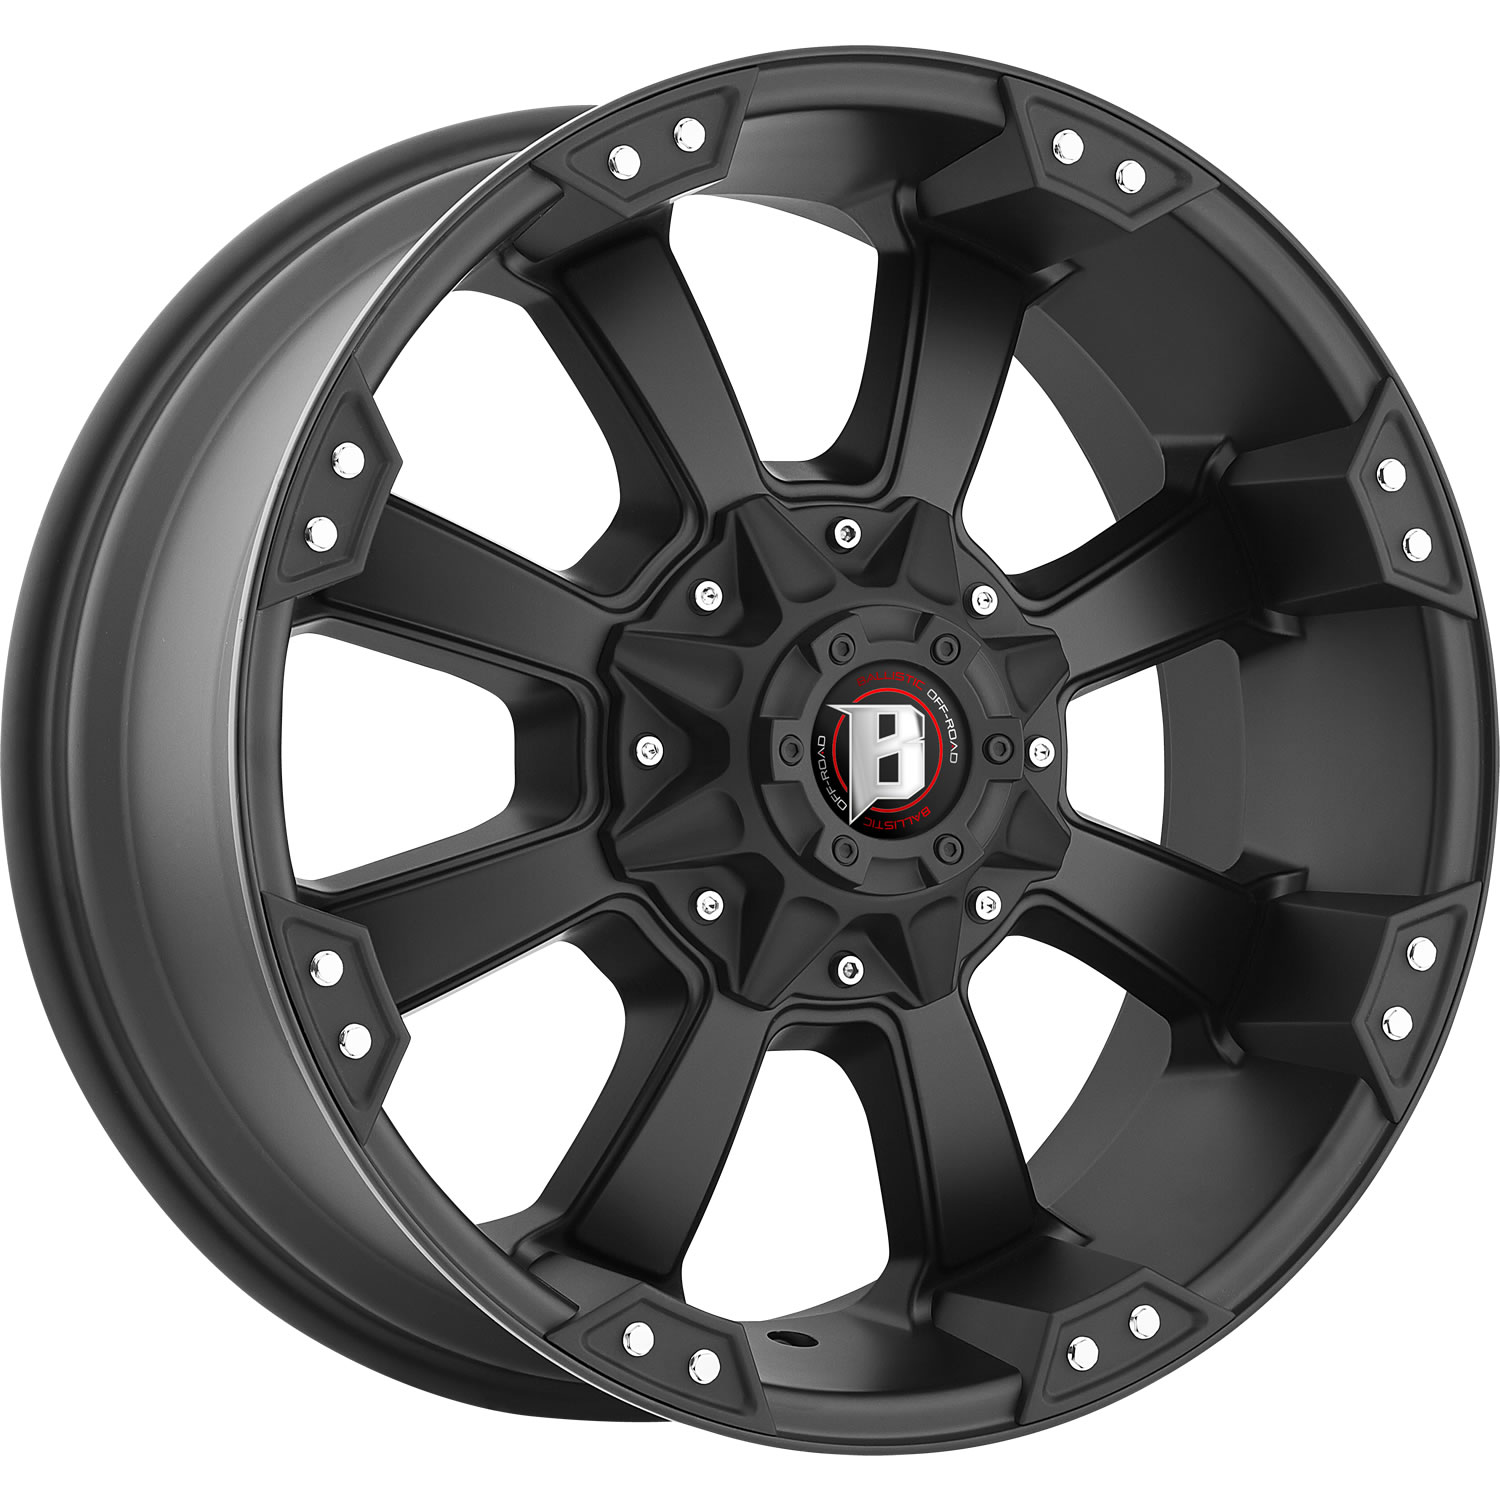 Ballistic Morax 20x9 12 Custom Wheels